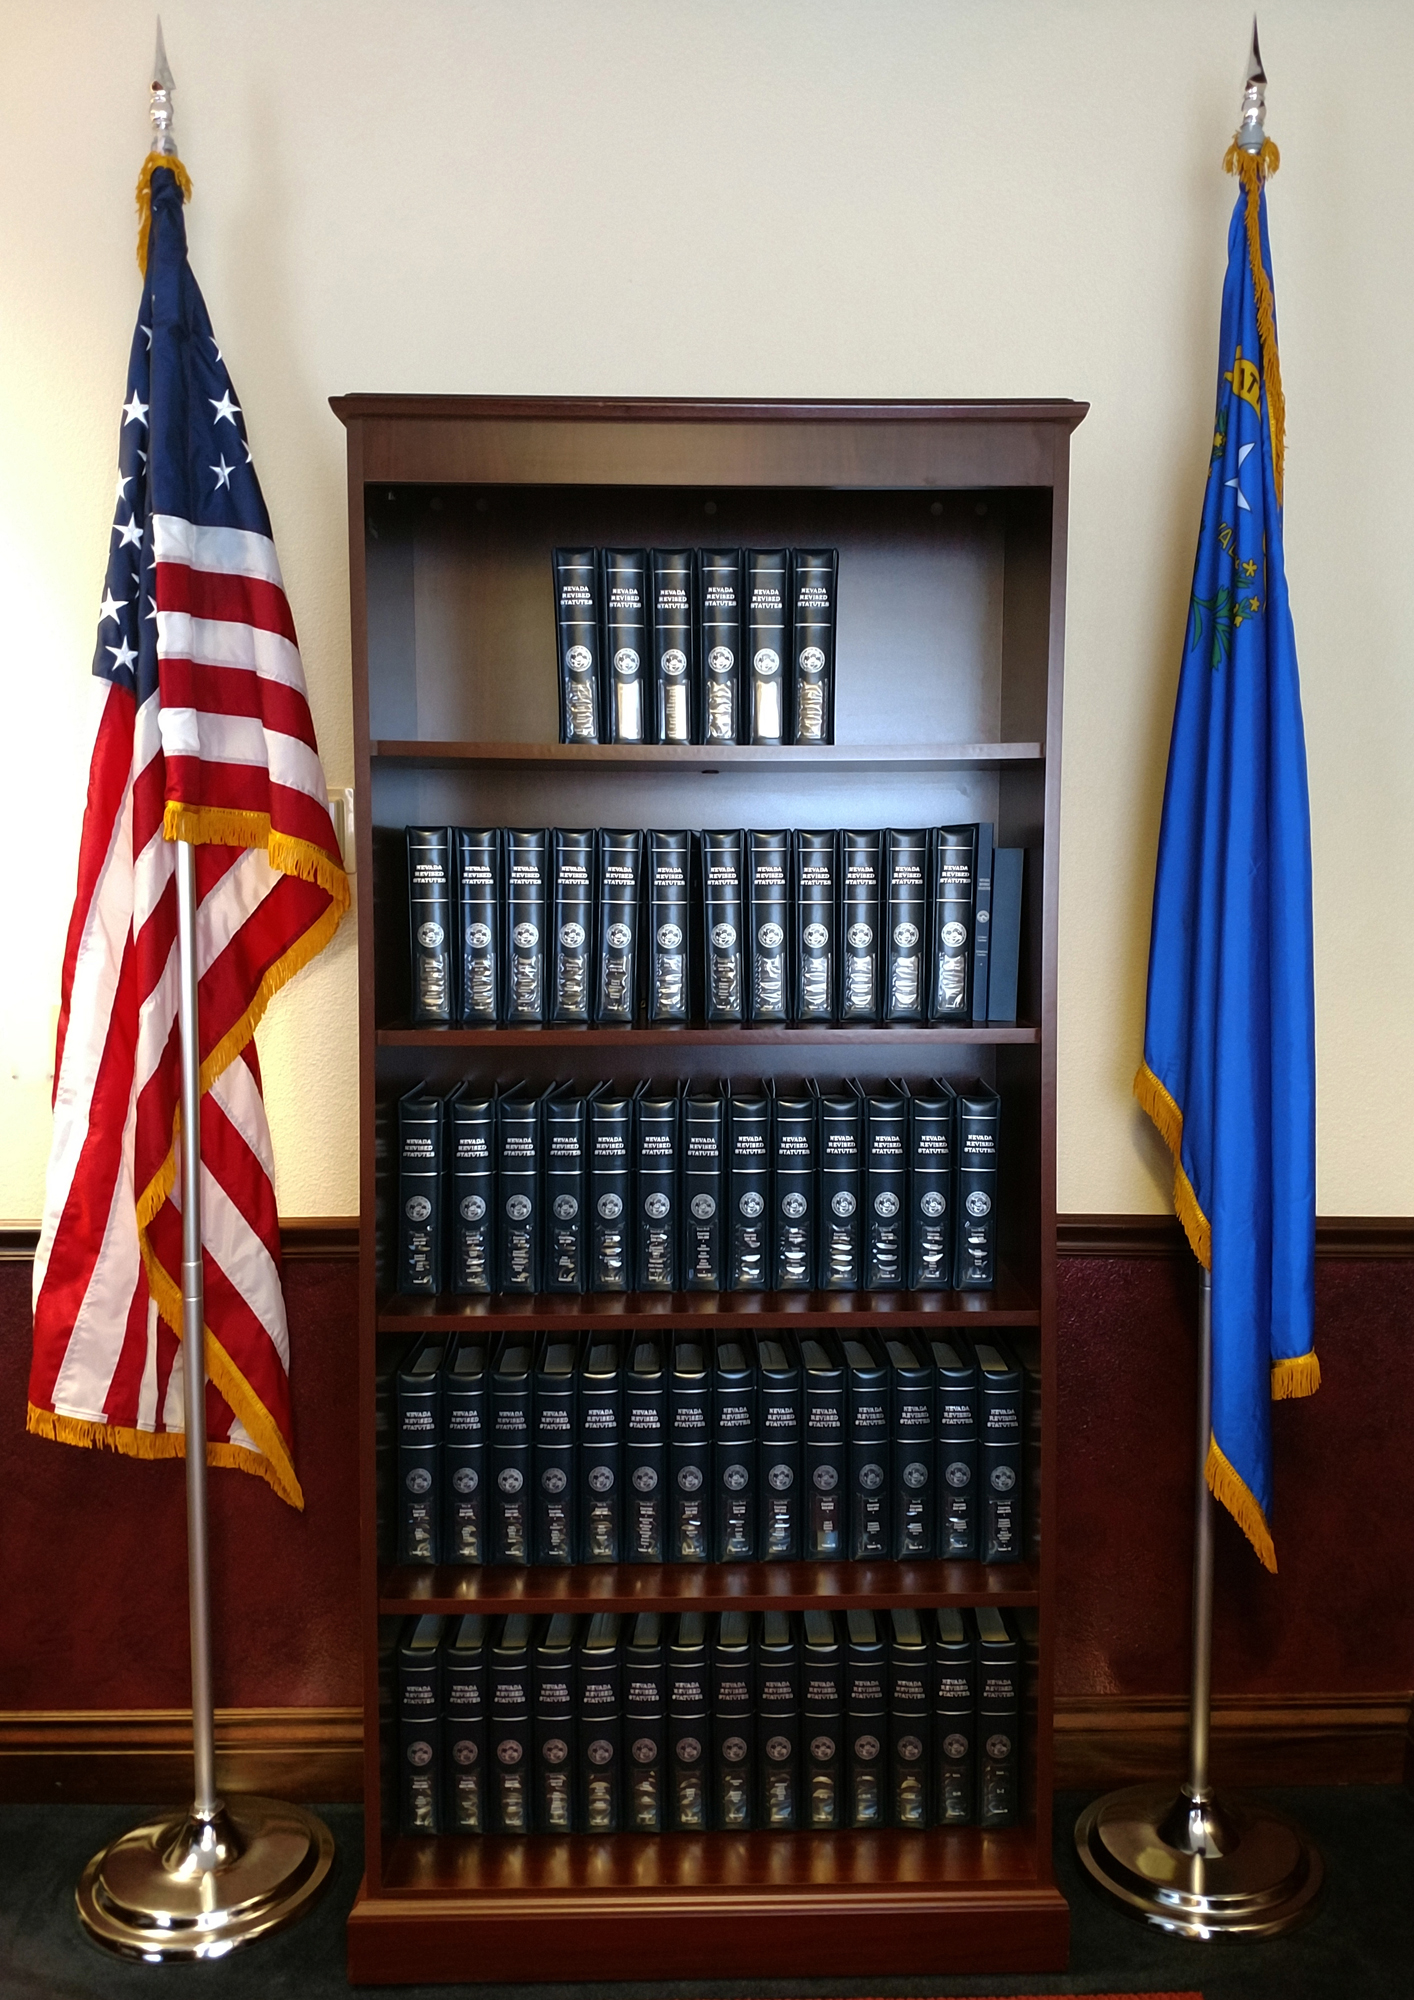 Nevada Revised Statutes 2017, with Binders